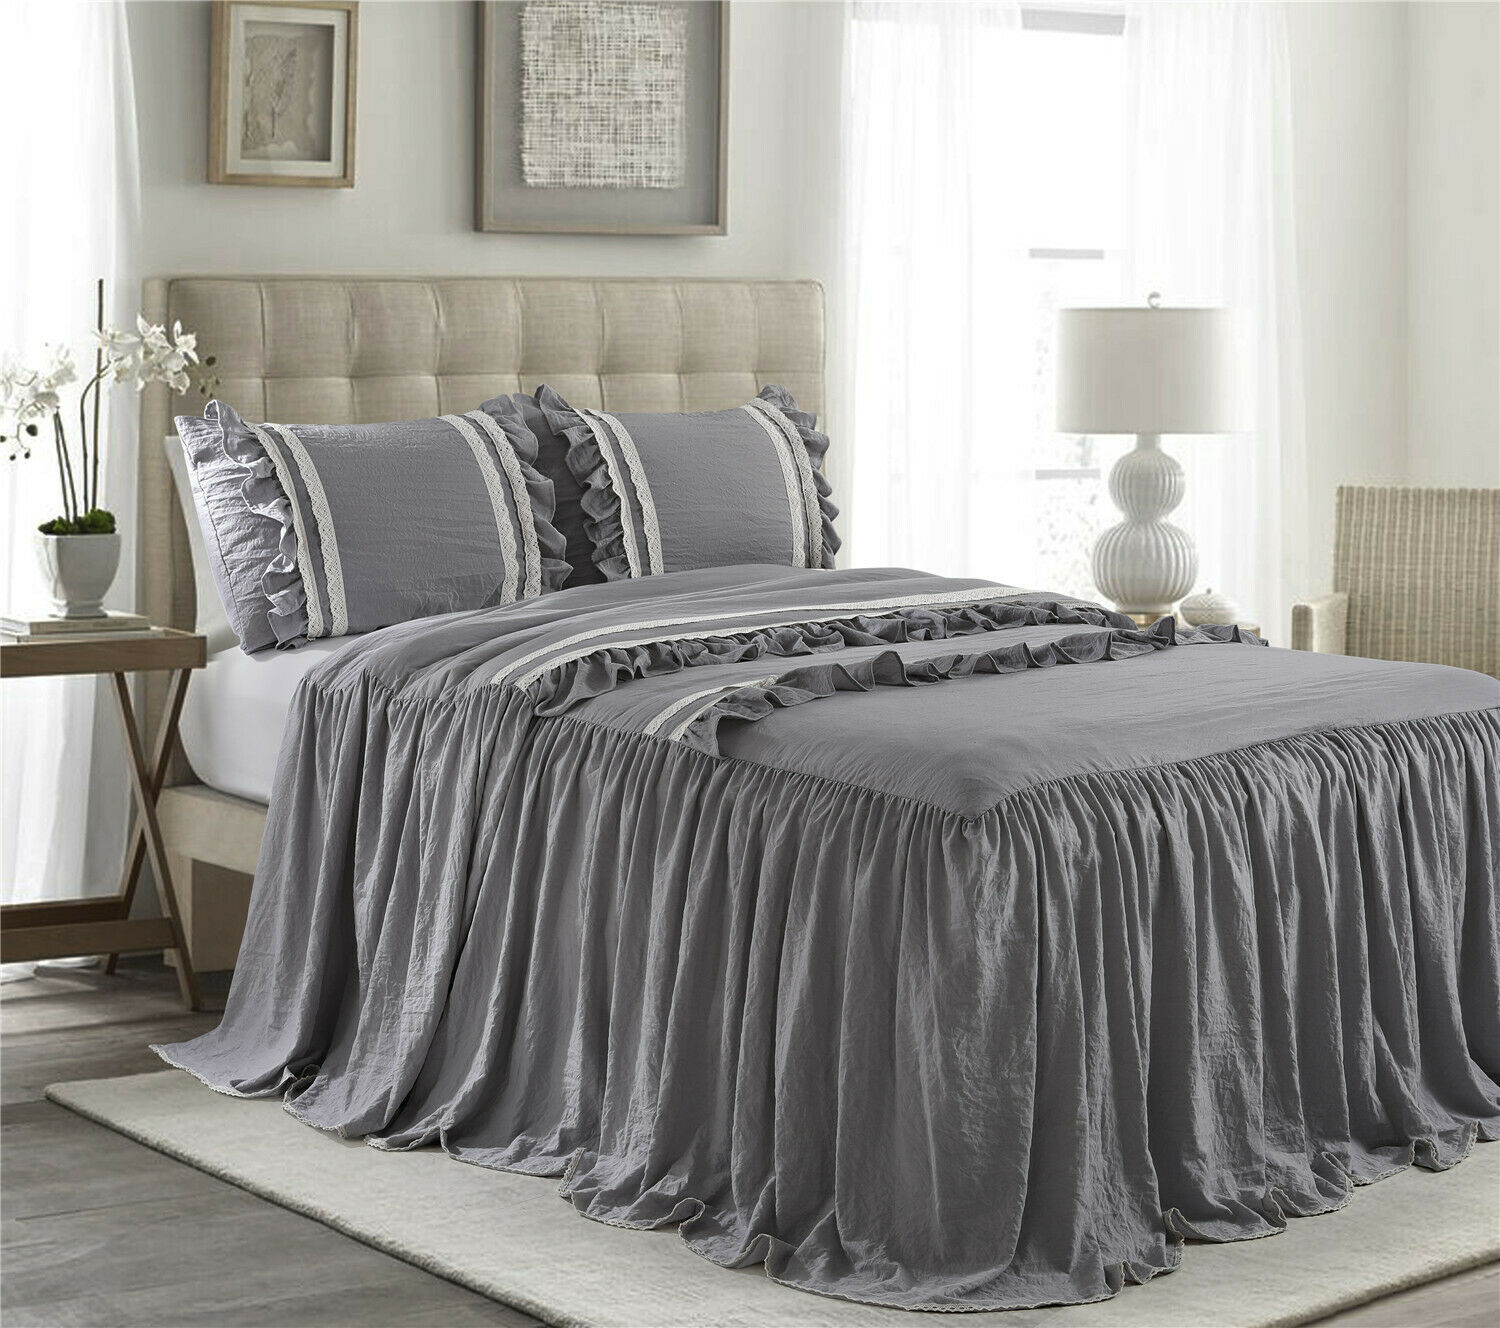 3 pc Queen Drop Ruffle Skirt Bedspread Set Includes 2 Ruffle Shams Ivory